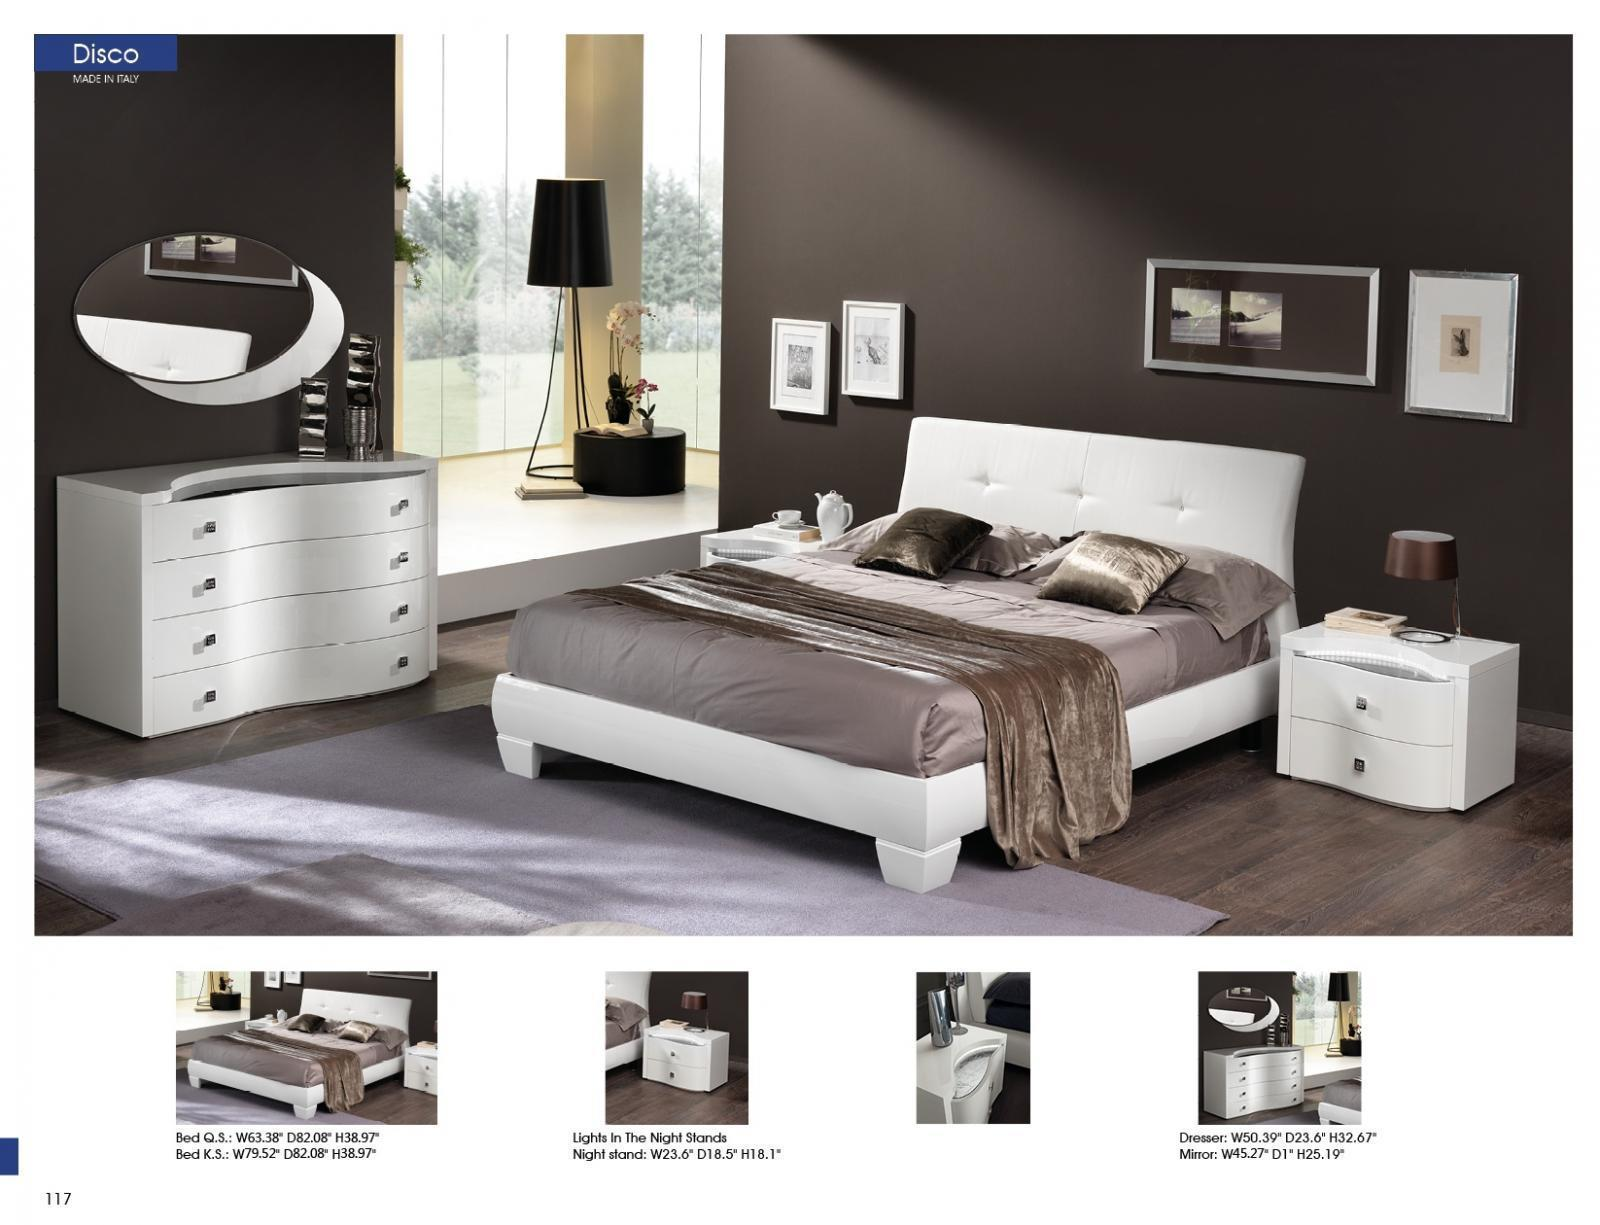 ESF Disco King Size Bedroom Set in White Modern 2 Night Stands Made in Italy